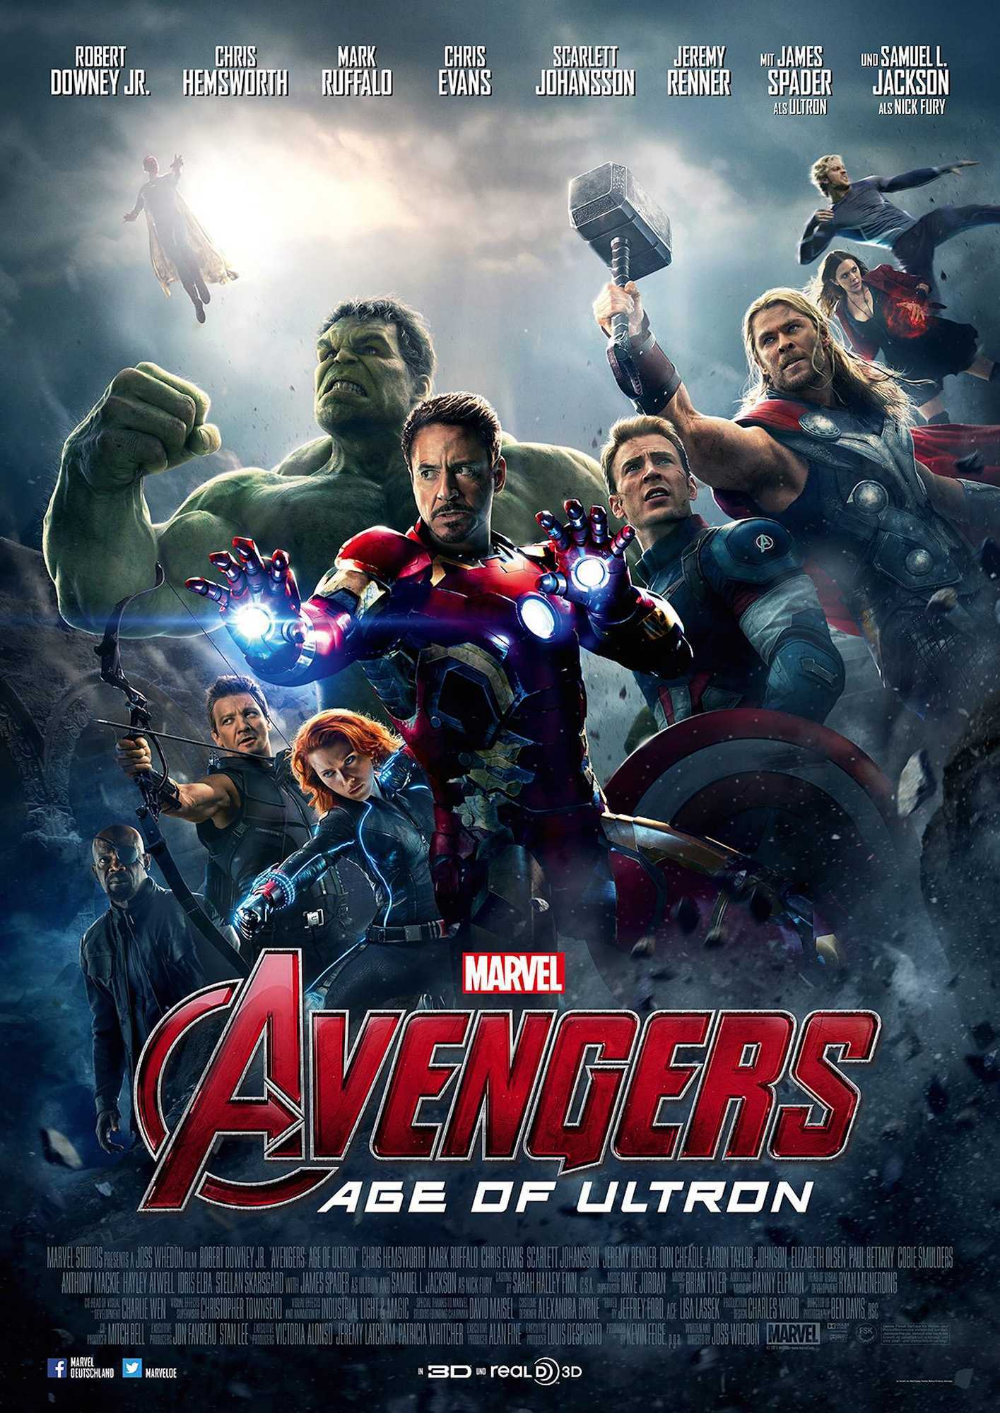 The Avengers Age Of Ultron Movie Poster Culture Posters 20 Off Ultron Movie Avengers Age Chris Hemsworth Movies